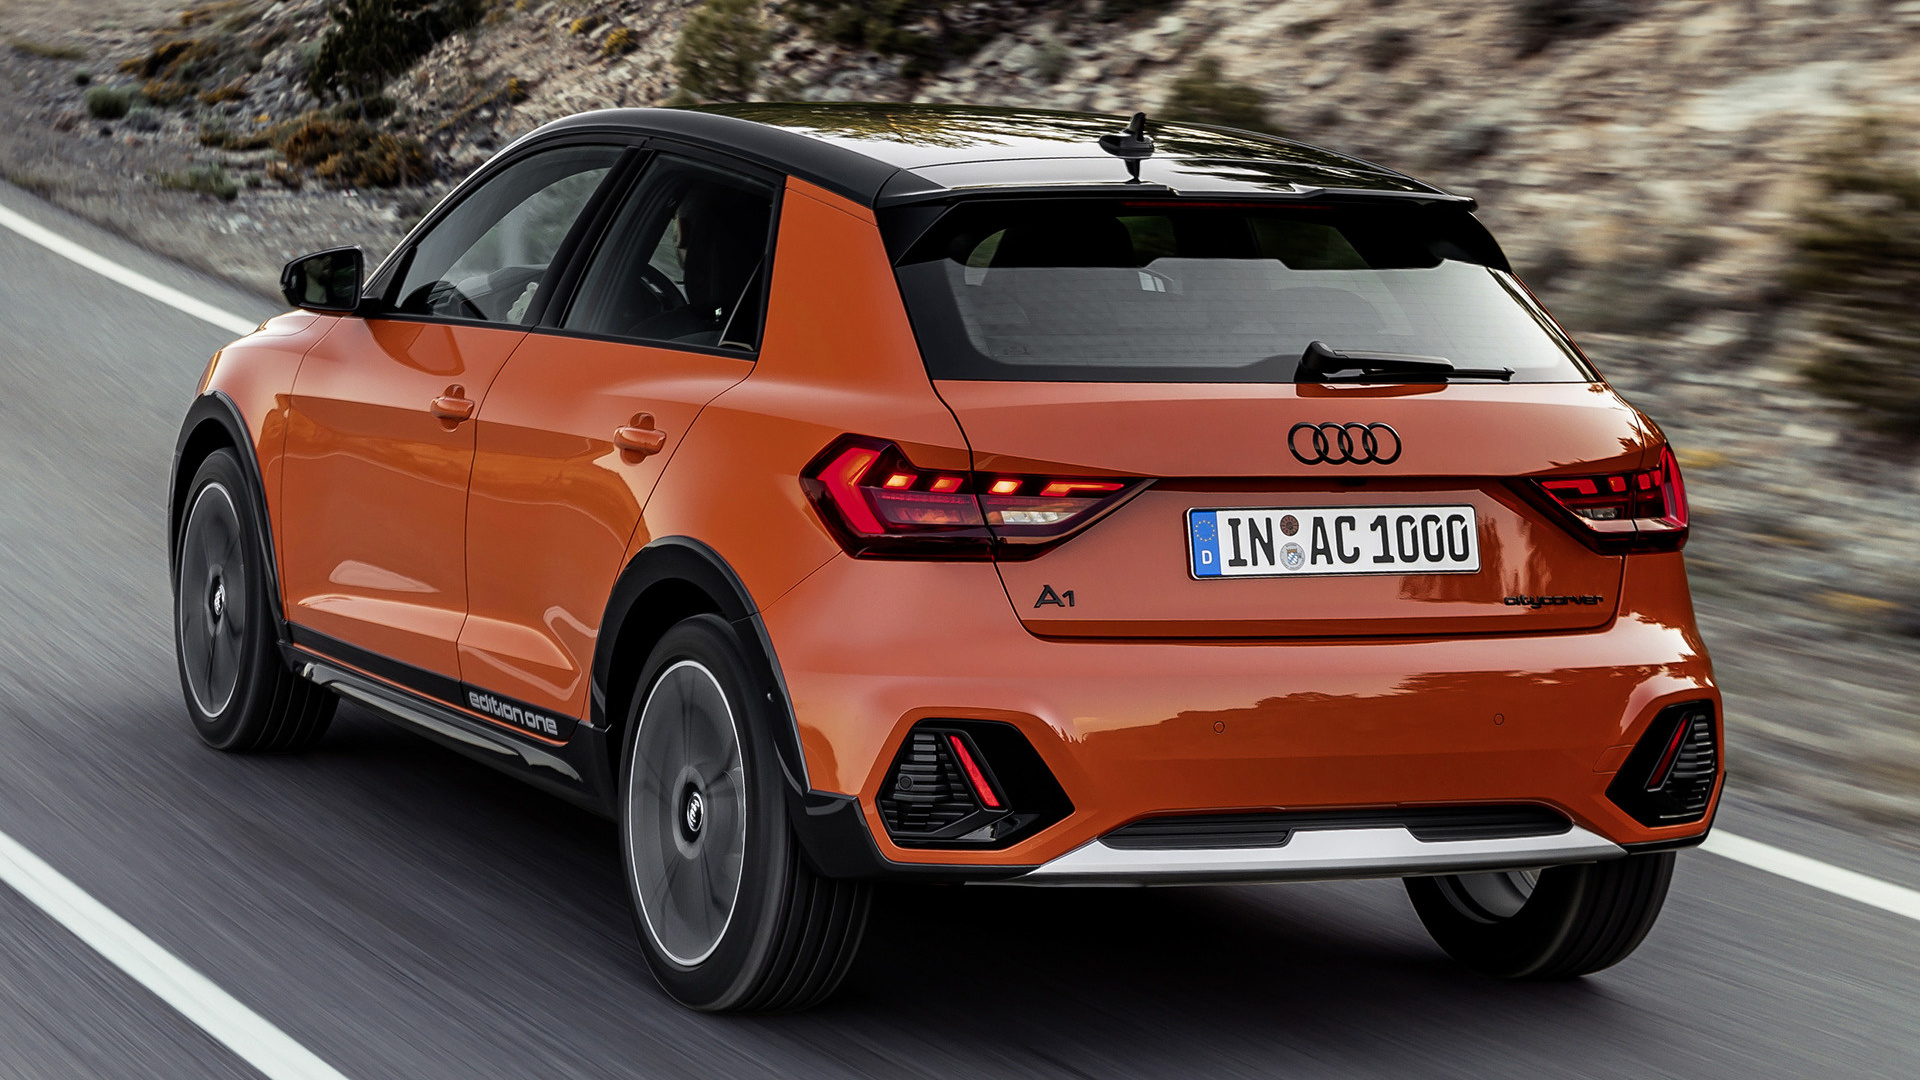 2019 Audi A1 Citycarver Edition One - Wallpapers and HD ...